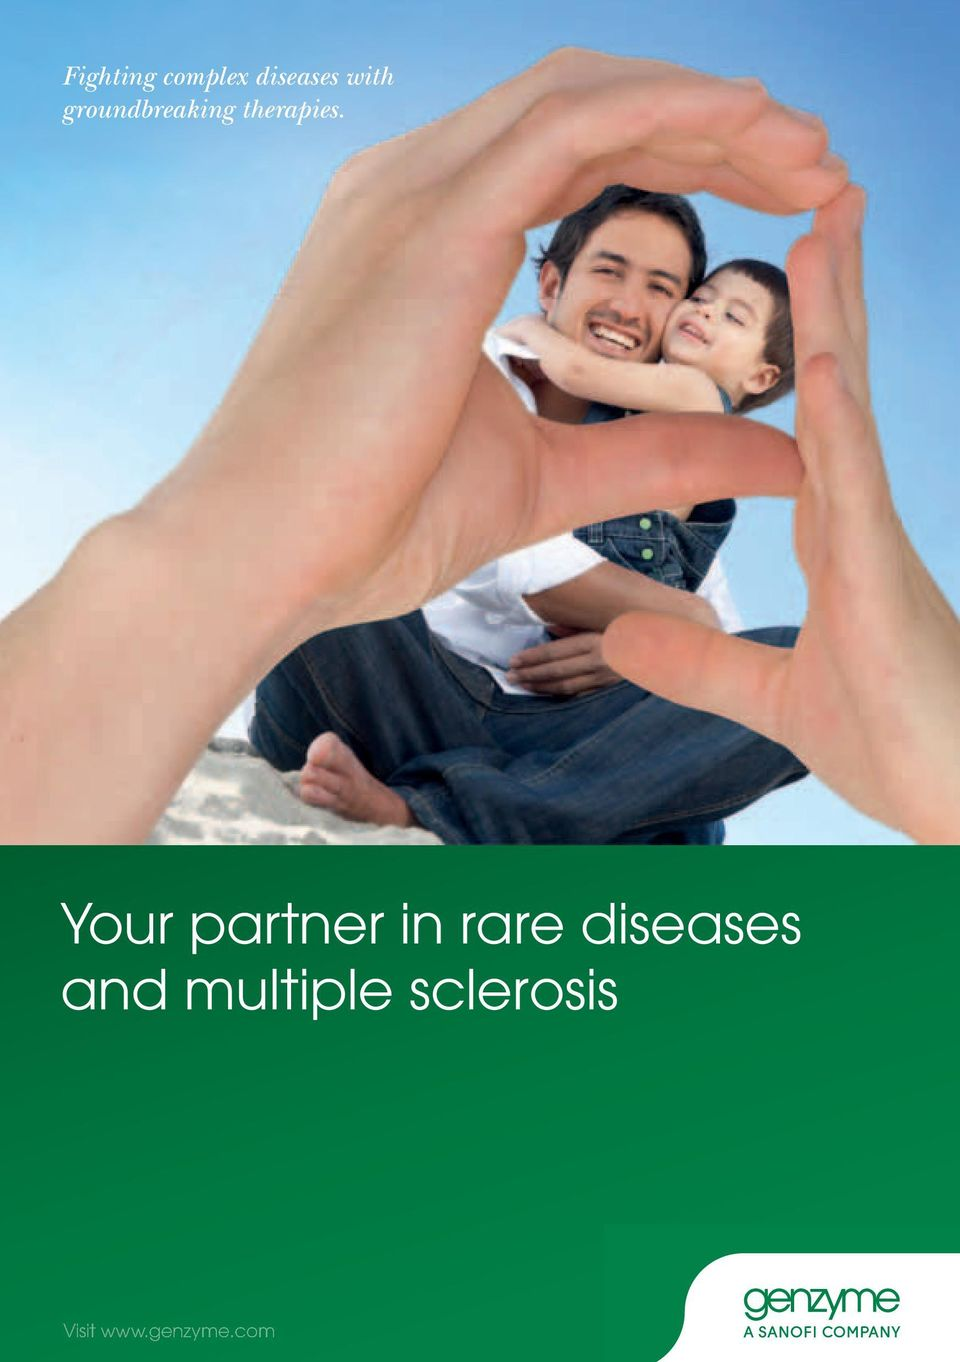 Your partner in rare diseases